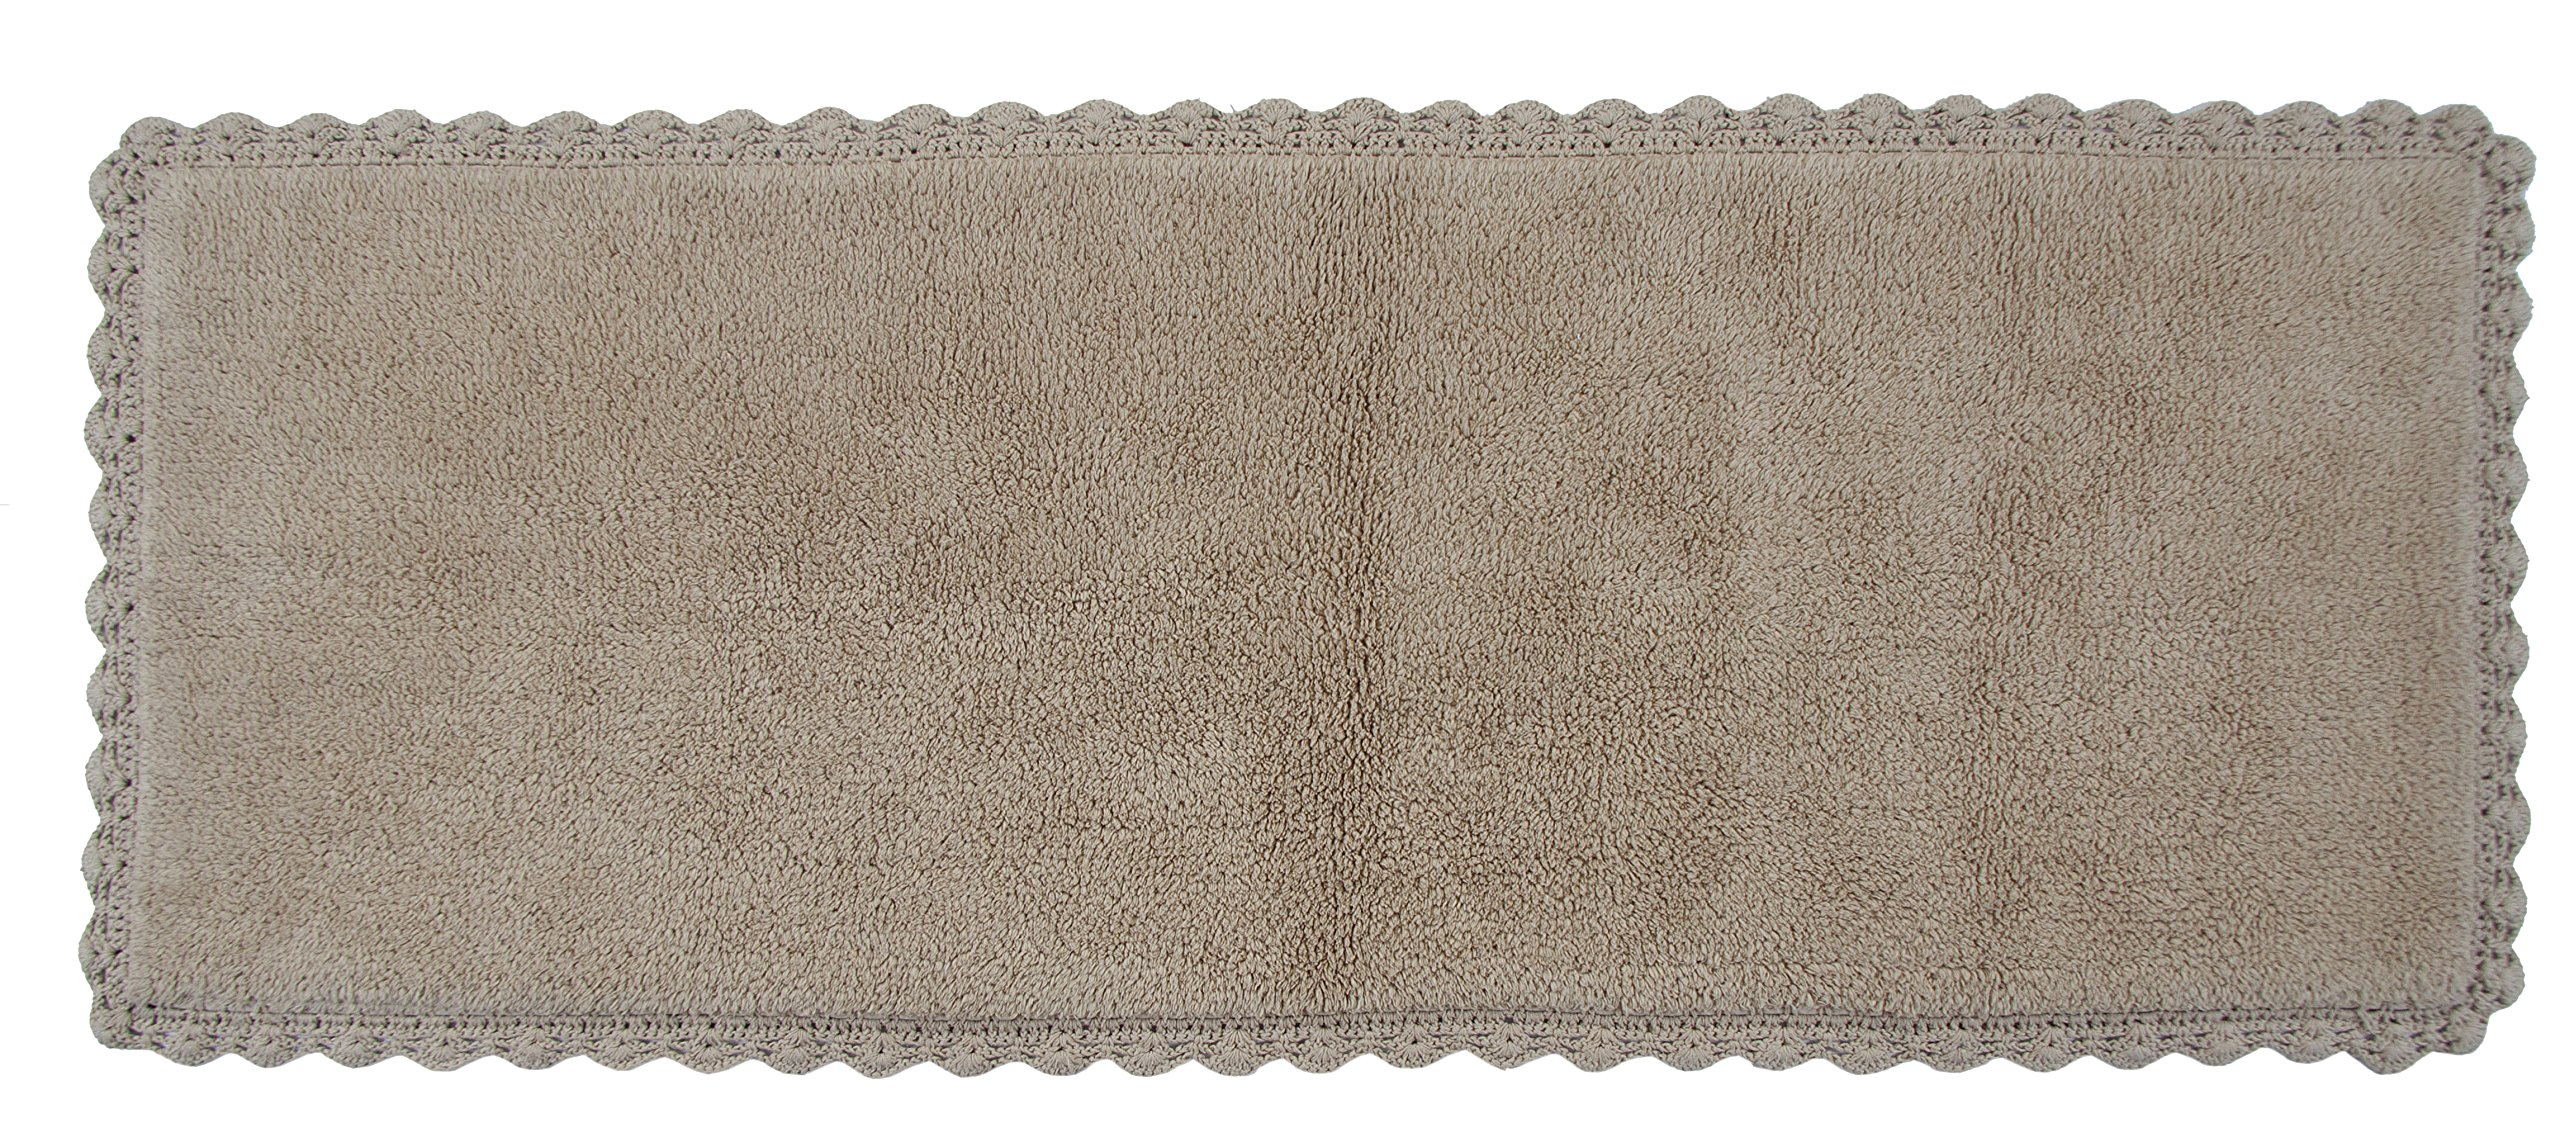 Chesapeake Merchandising Crochet Bath Runner, 22 by 60-Inch, Linen